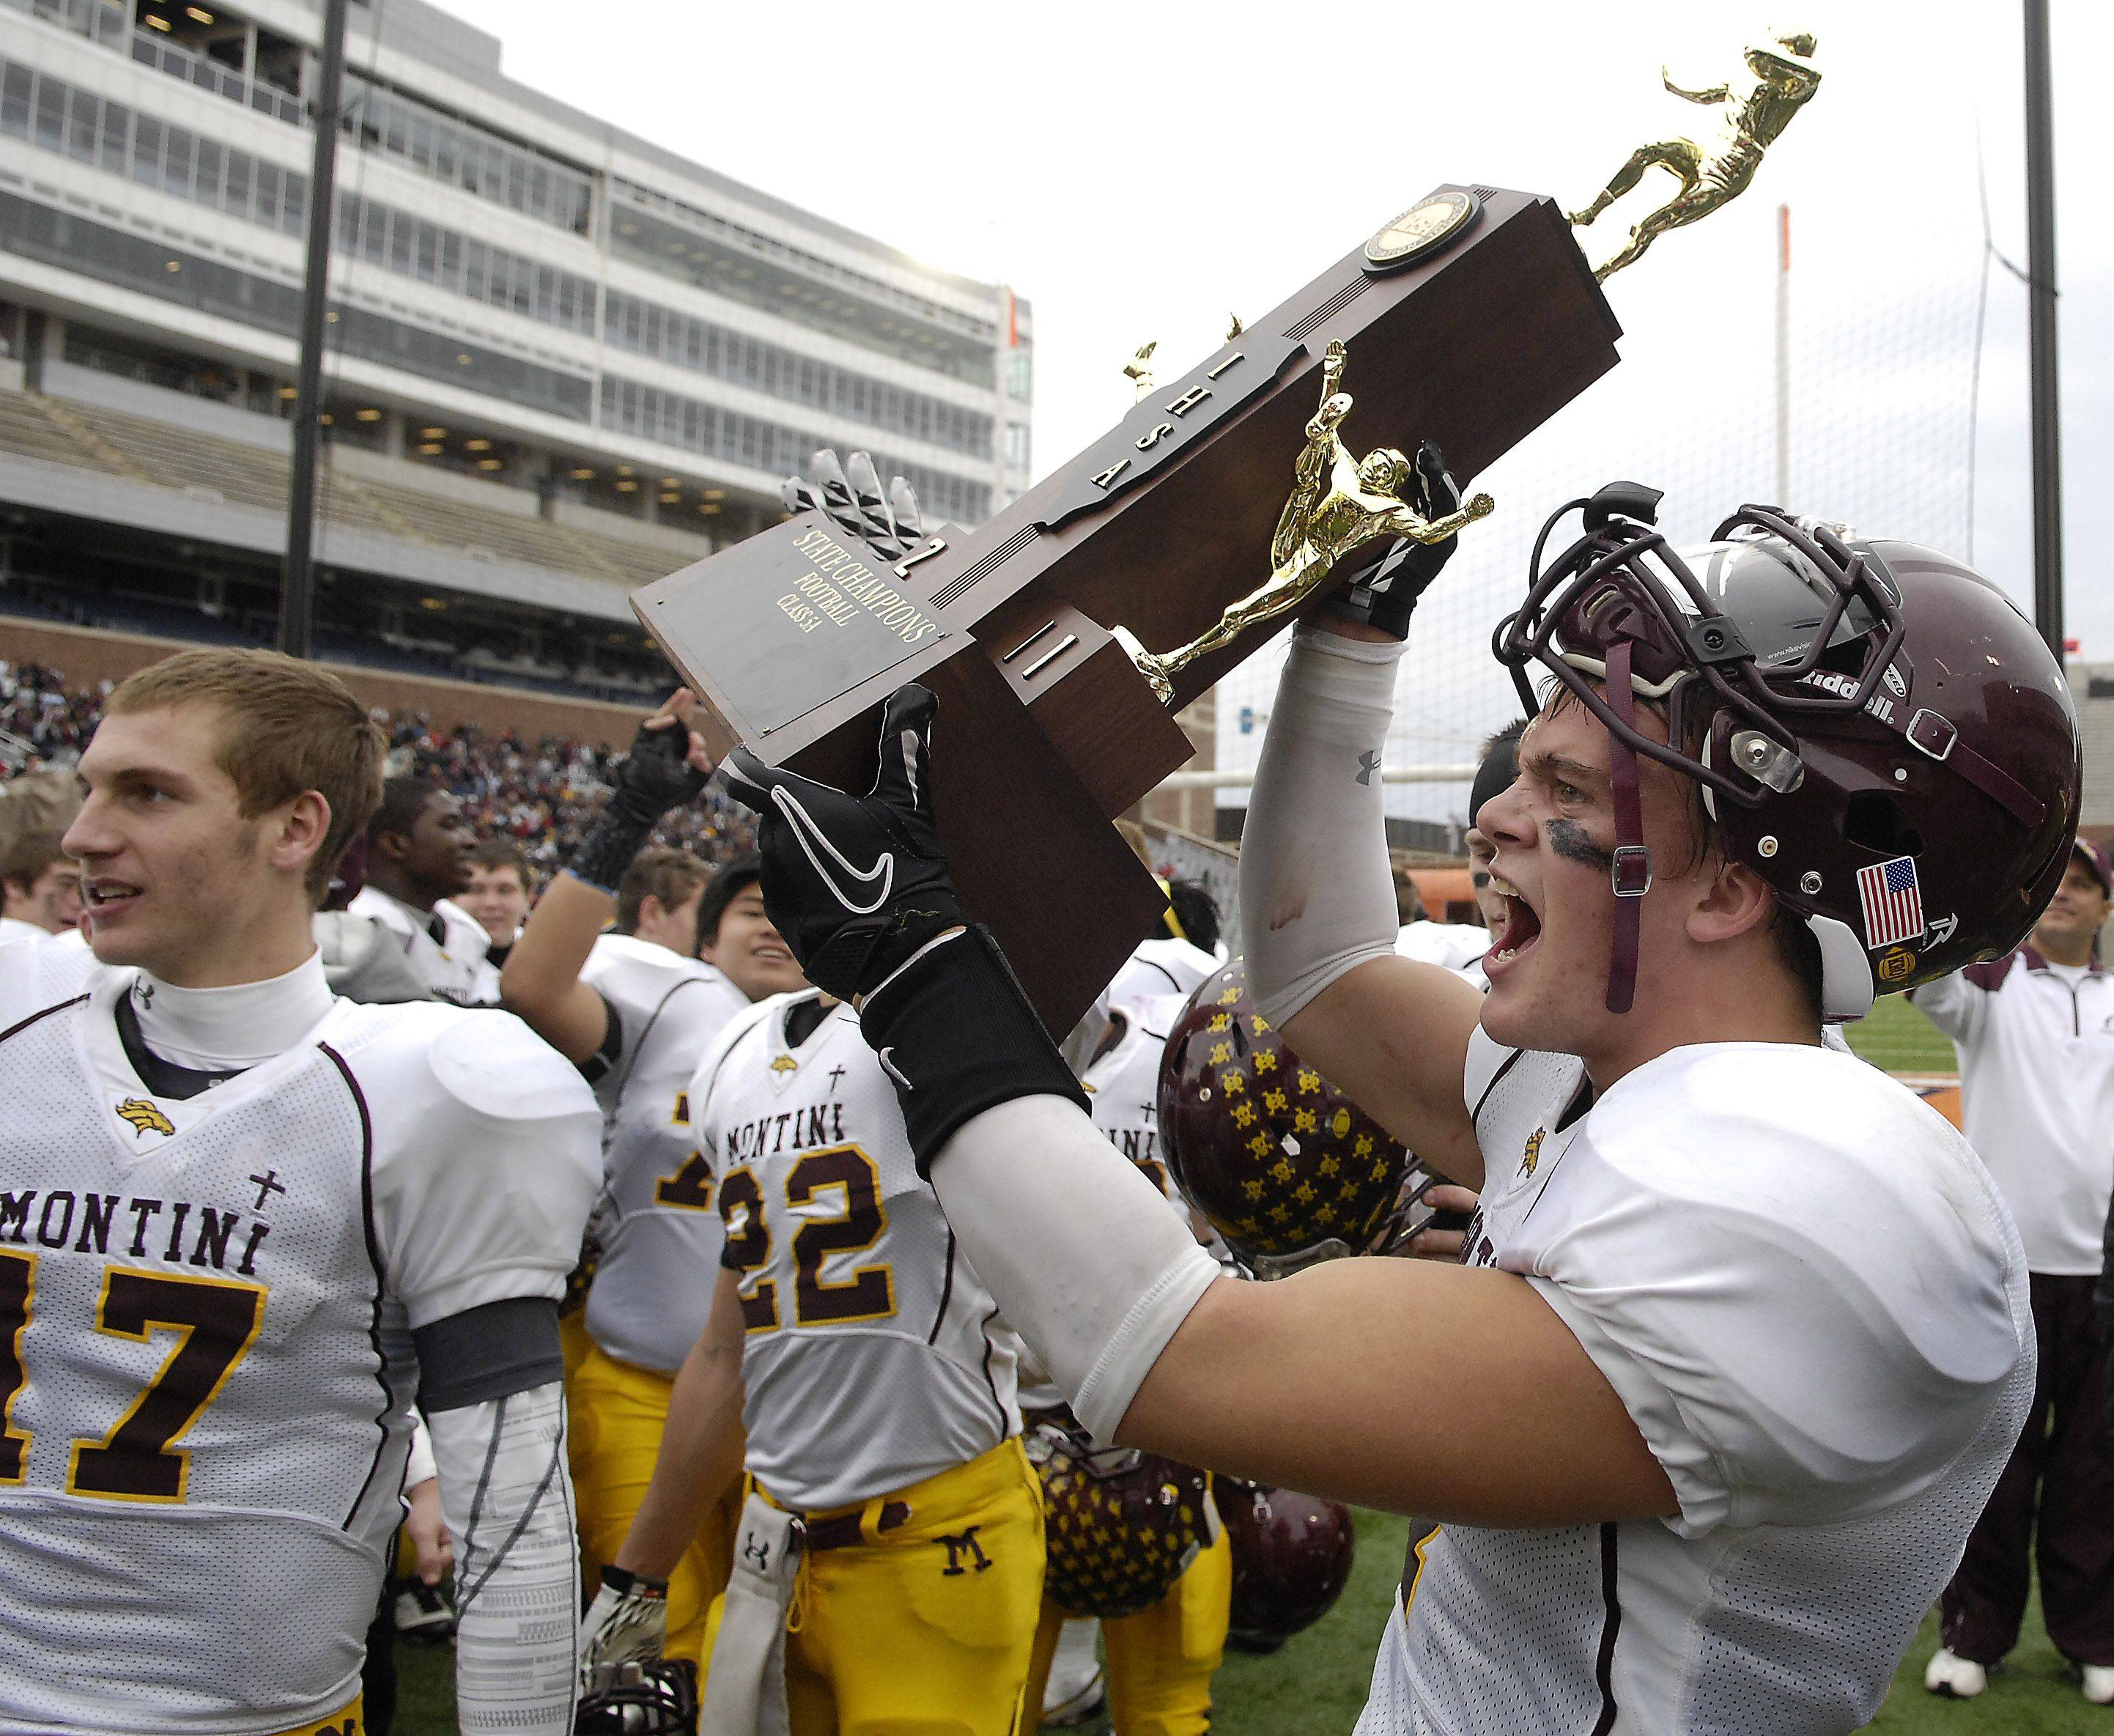 Montini's Tim Mikeworth gets his turn with the trophy following the Broncos' win over Joliet Catholic in the Class 5A state championship in Champaign on Saturday.